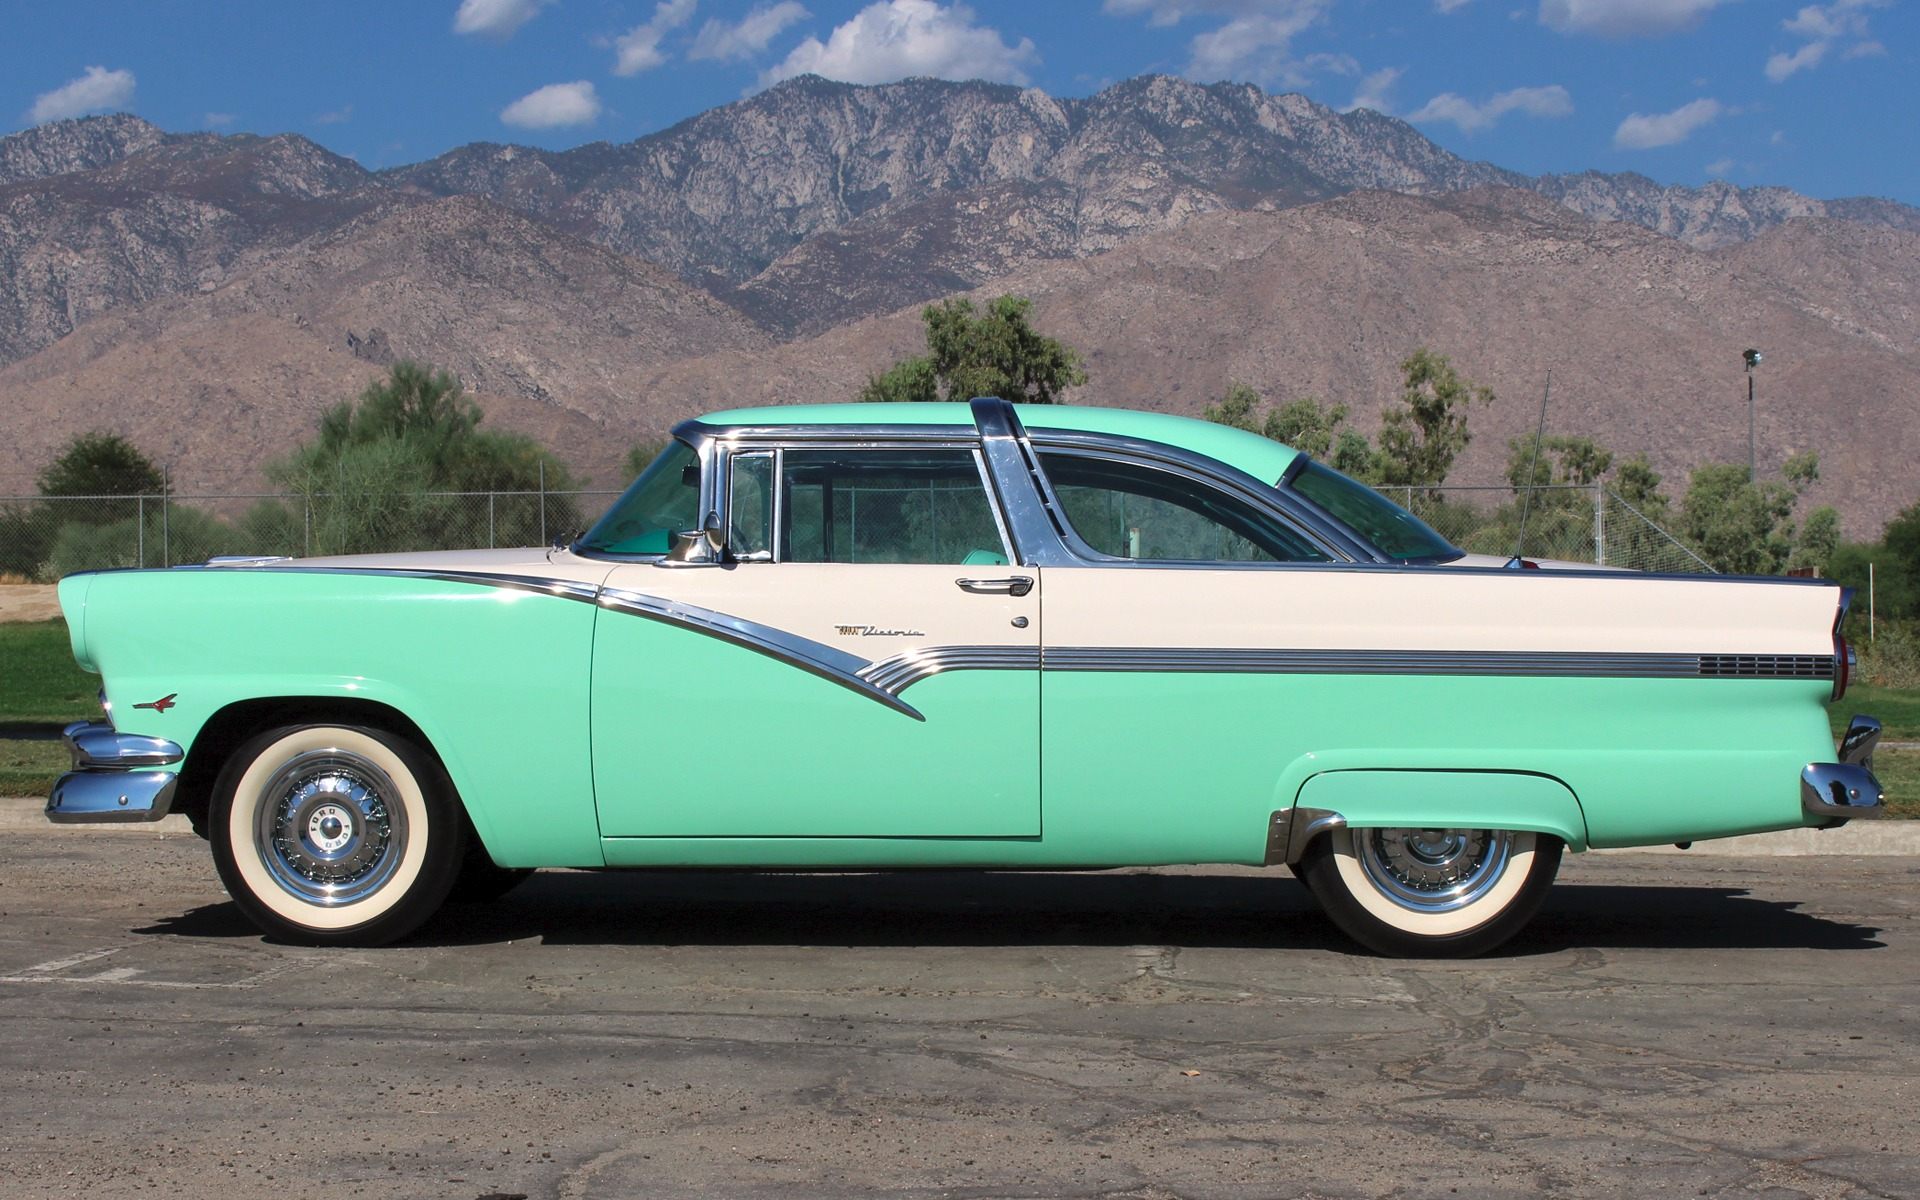 Used 1956 ford fairlane crown victoria palm springs ca